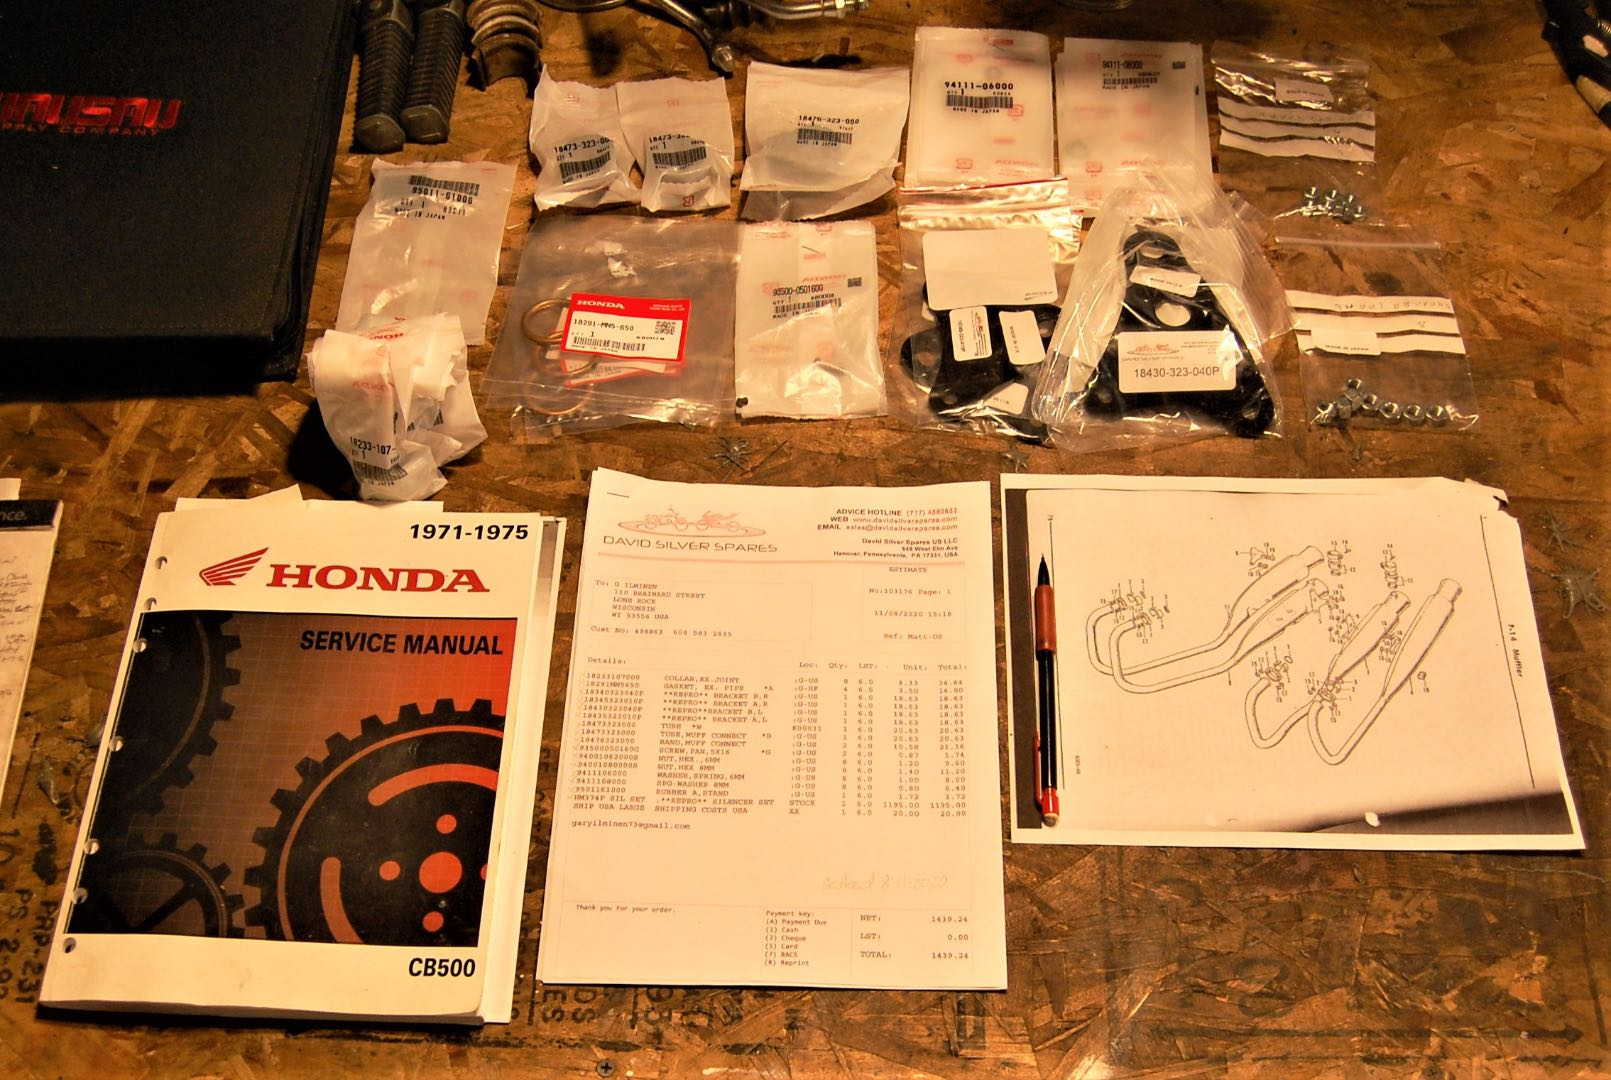 1973 Honda CB500K2 pre-assembly: Step one is to make sure all the parts are there, if you need to order all the mounting hardware. The parts list and diagram help visualize how it all fits together.